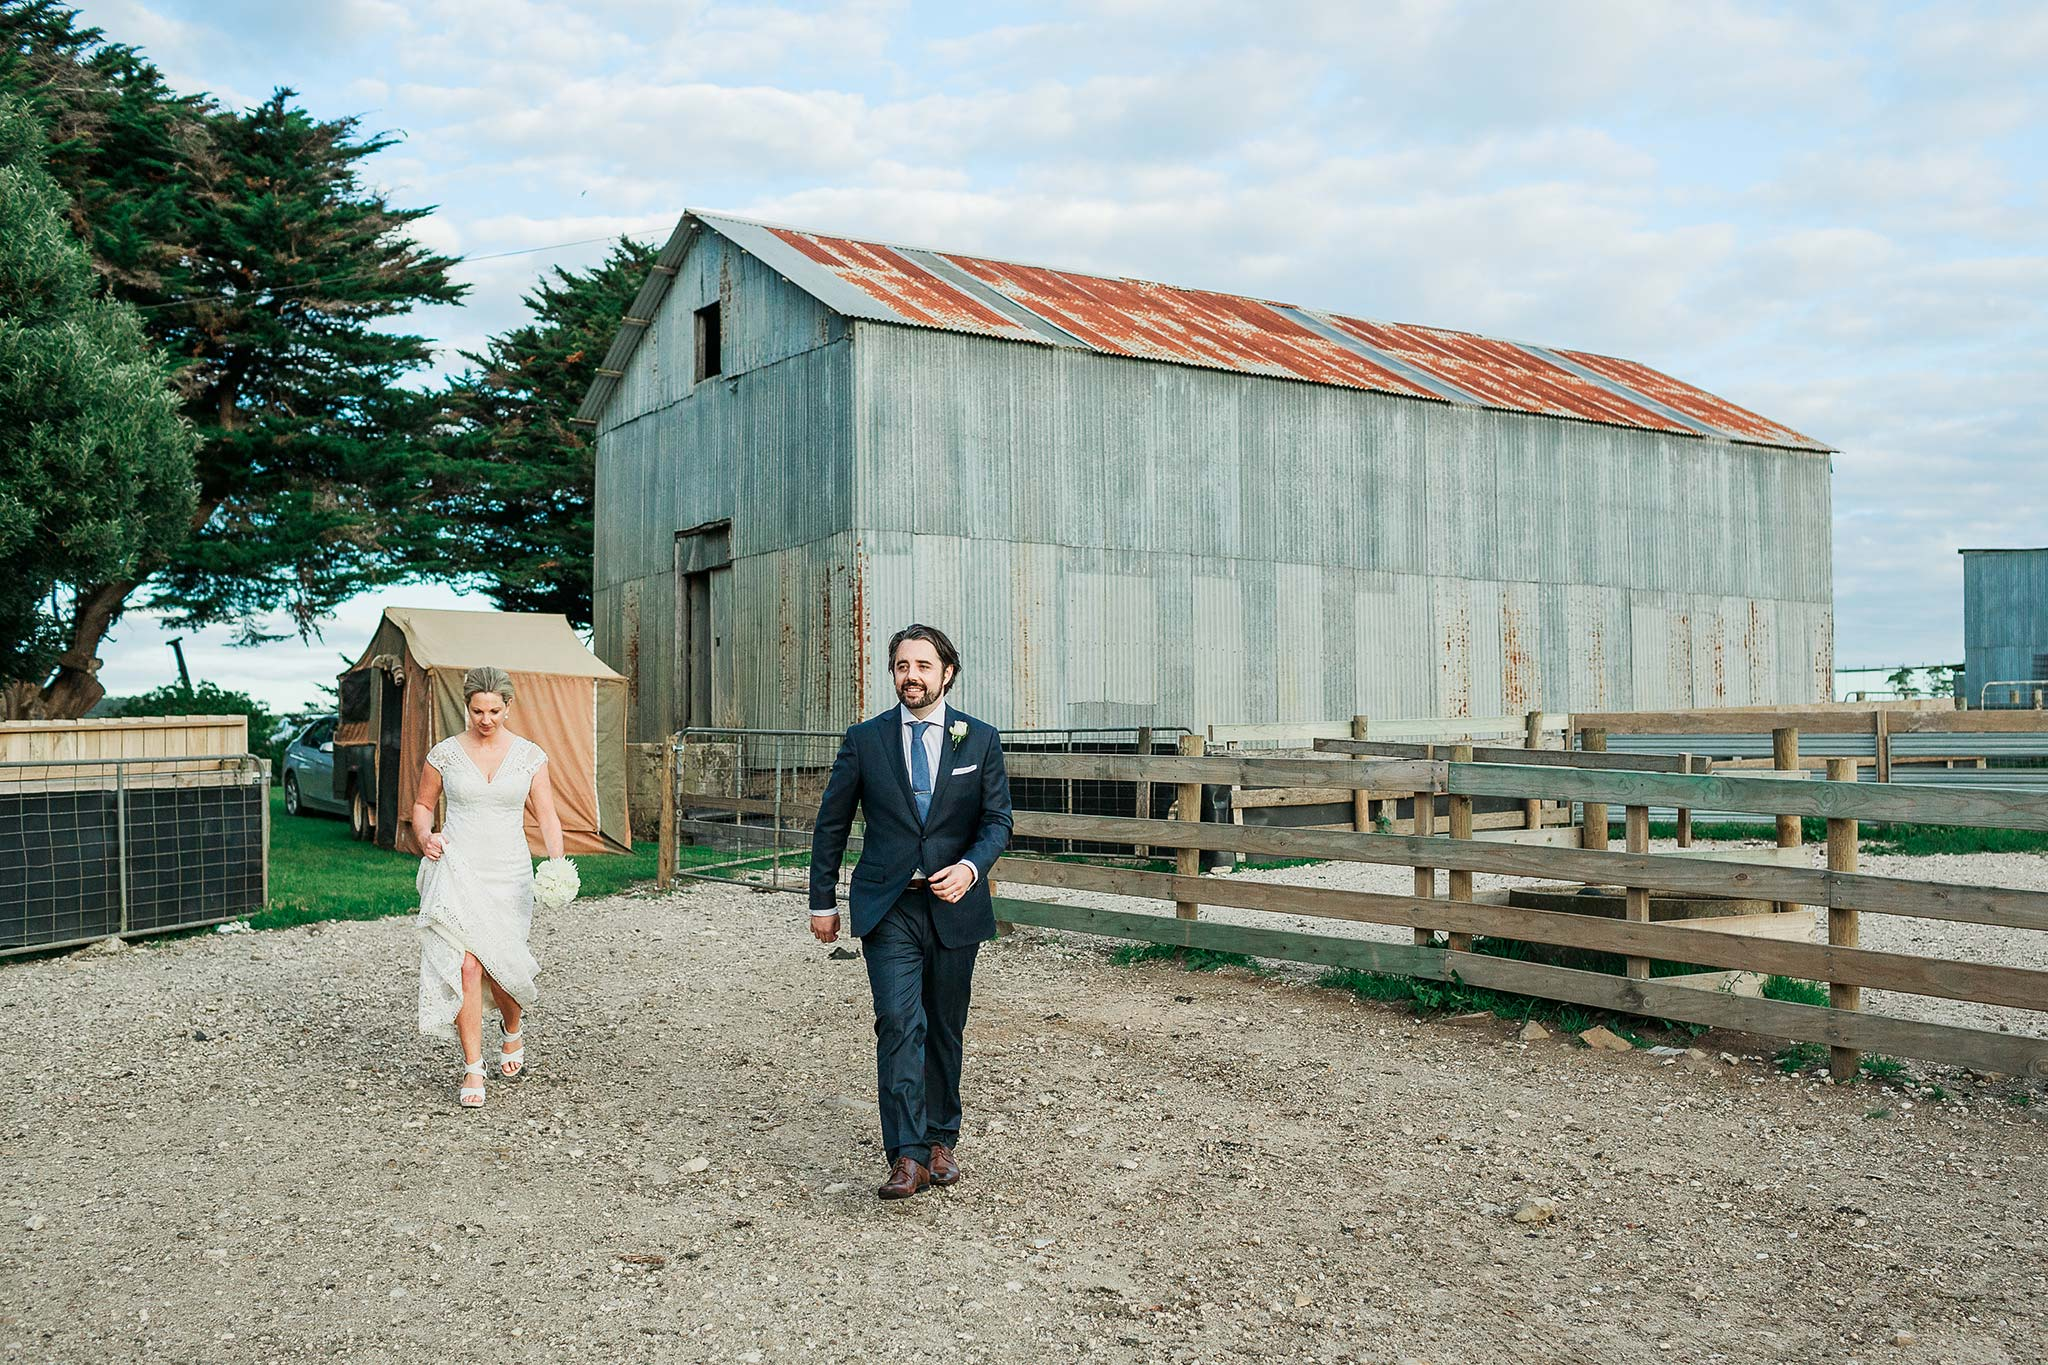 melbourne-wedding-photographer-farm-factory